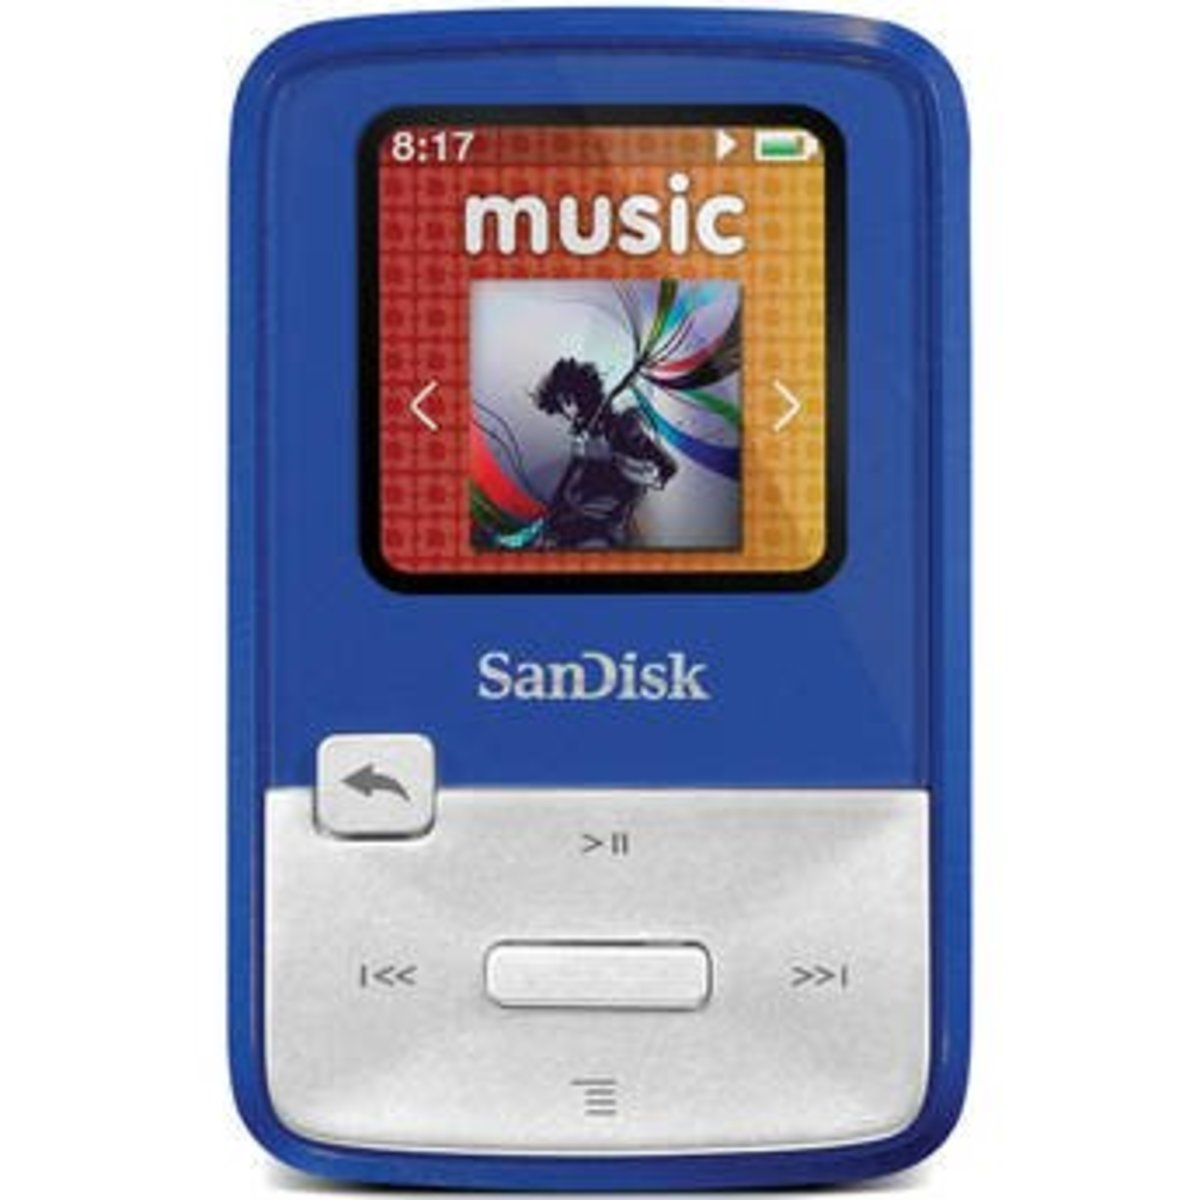 The SanDisk Sansa Clip Zip MP3 player offers 4 GB of storage space and features a built-in FM radio receiver.